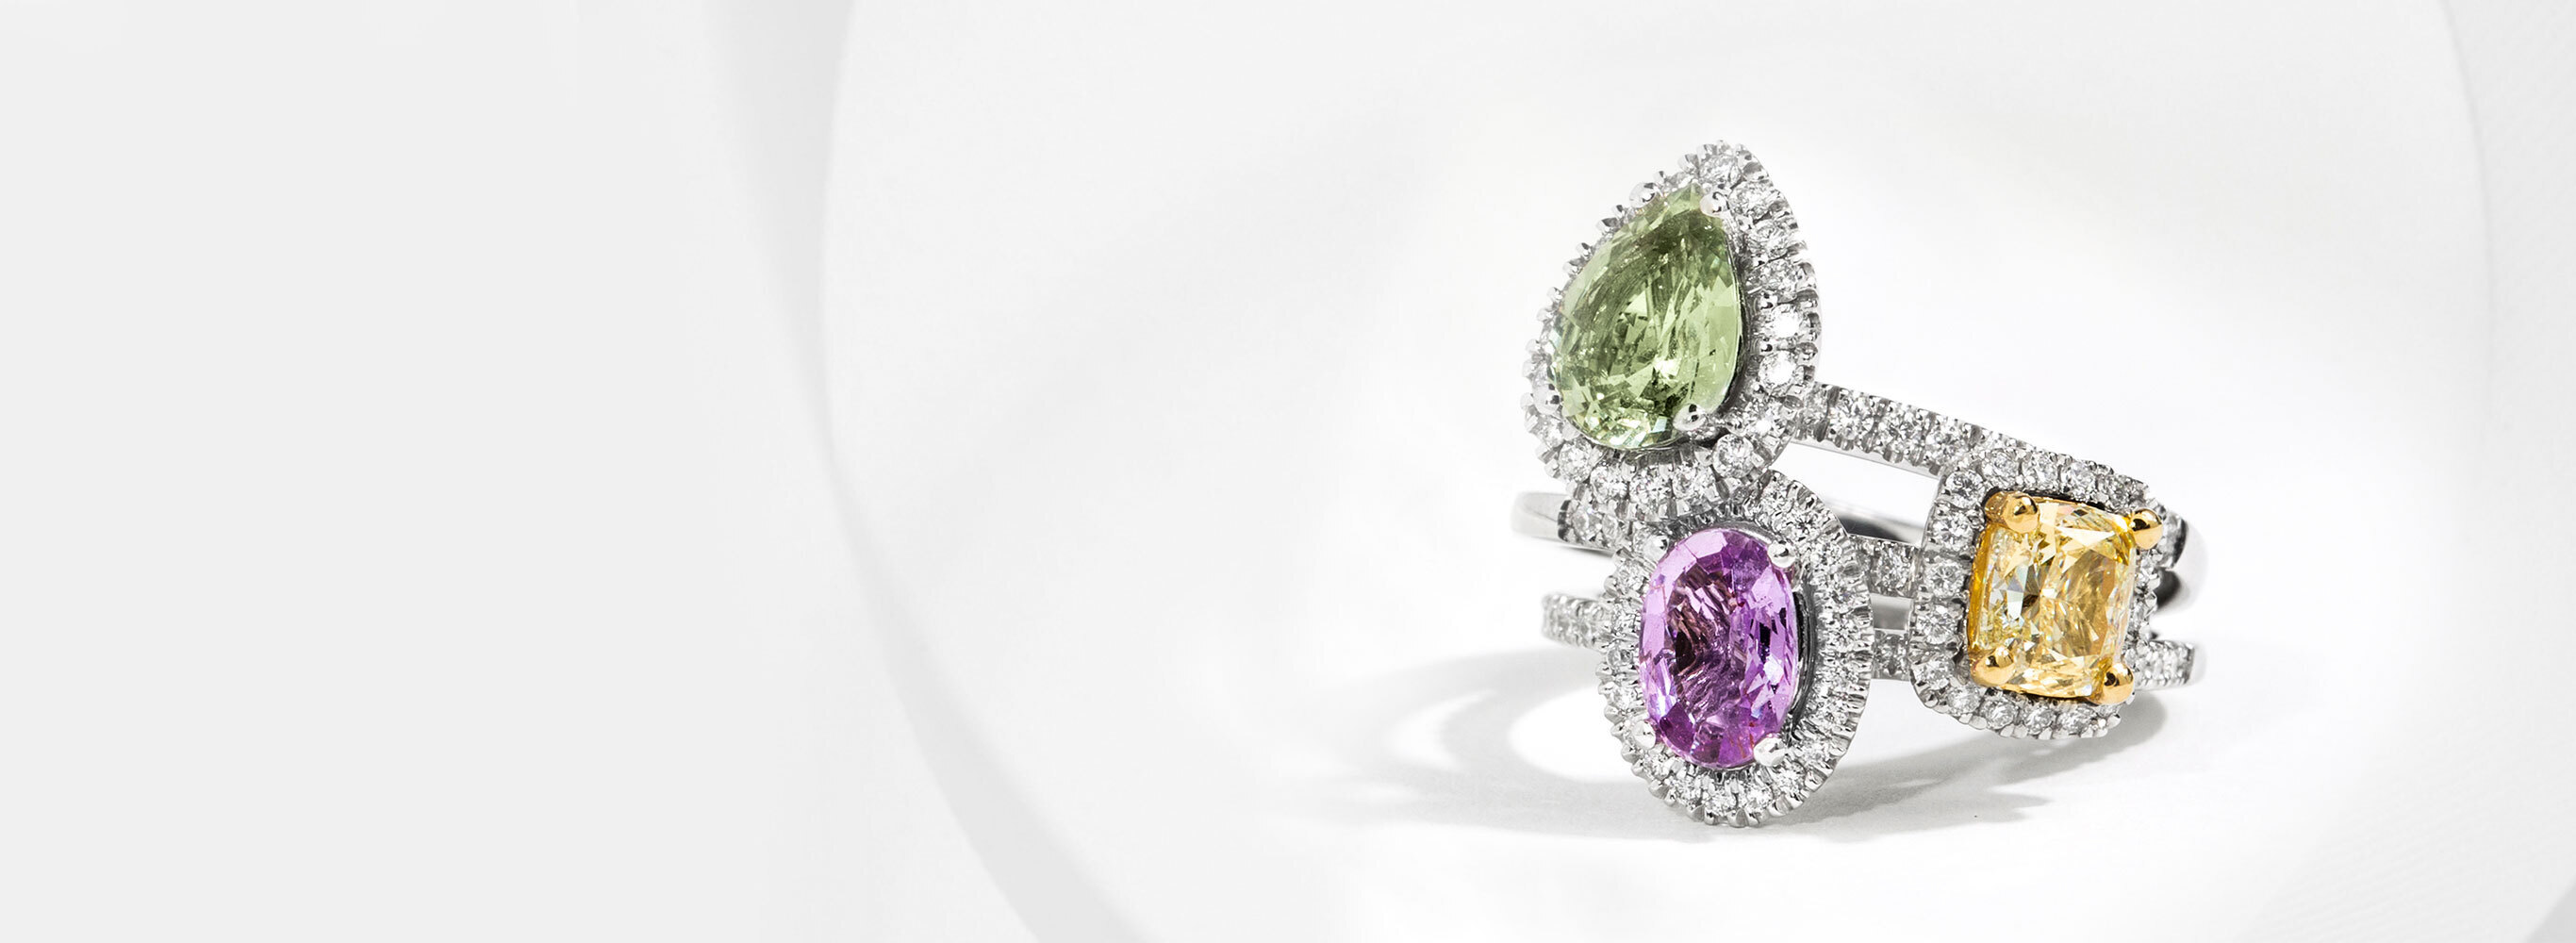 Stack of Three Diamond Halo Gemstone Engagement Rings In White Gold Featuring Pear Cut Green Sapphire, Cushion Cut Yellow Sapphire, and Oval Cut Violet Sapphire